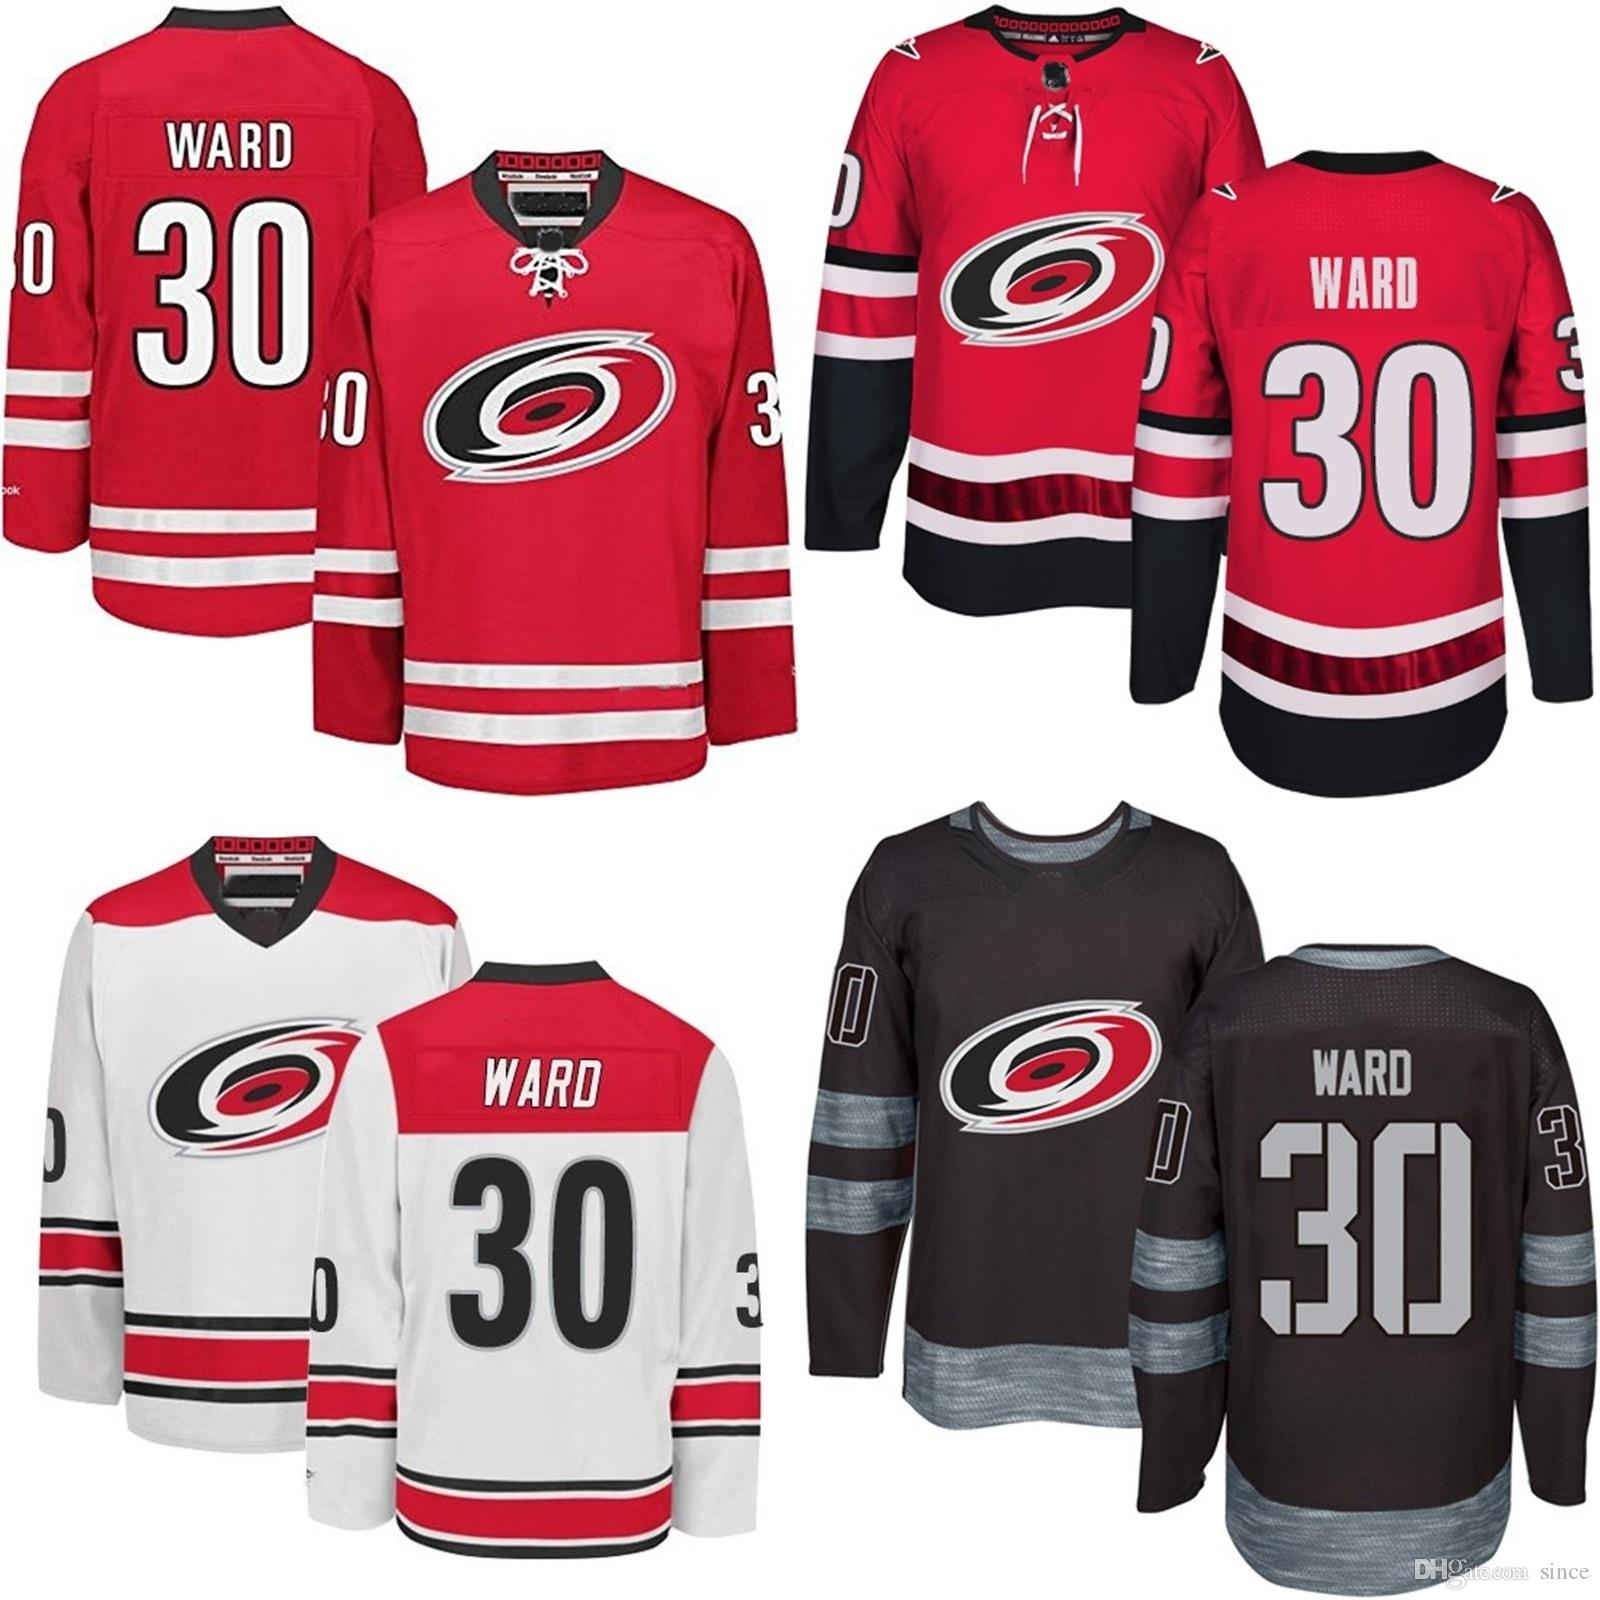 huge selection of ce90b 84853 Cheap 2016 New Mens Carolina Hurricanes 30 Cam Ward White Black Red Ice  Hockey Jersey 100% Embroidery logo Authentic Jerseys Size S-3XL